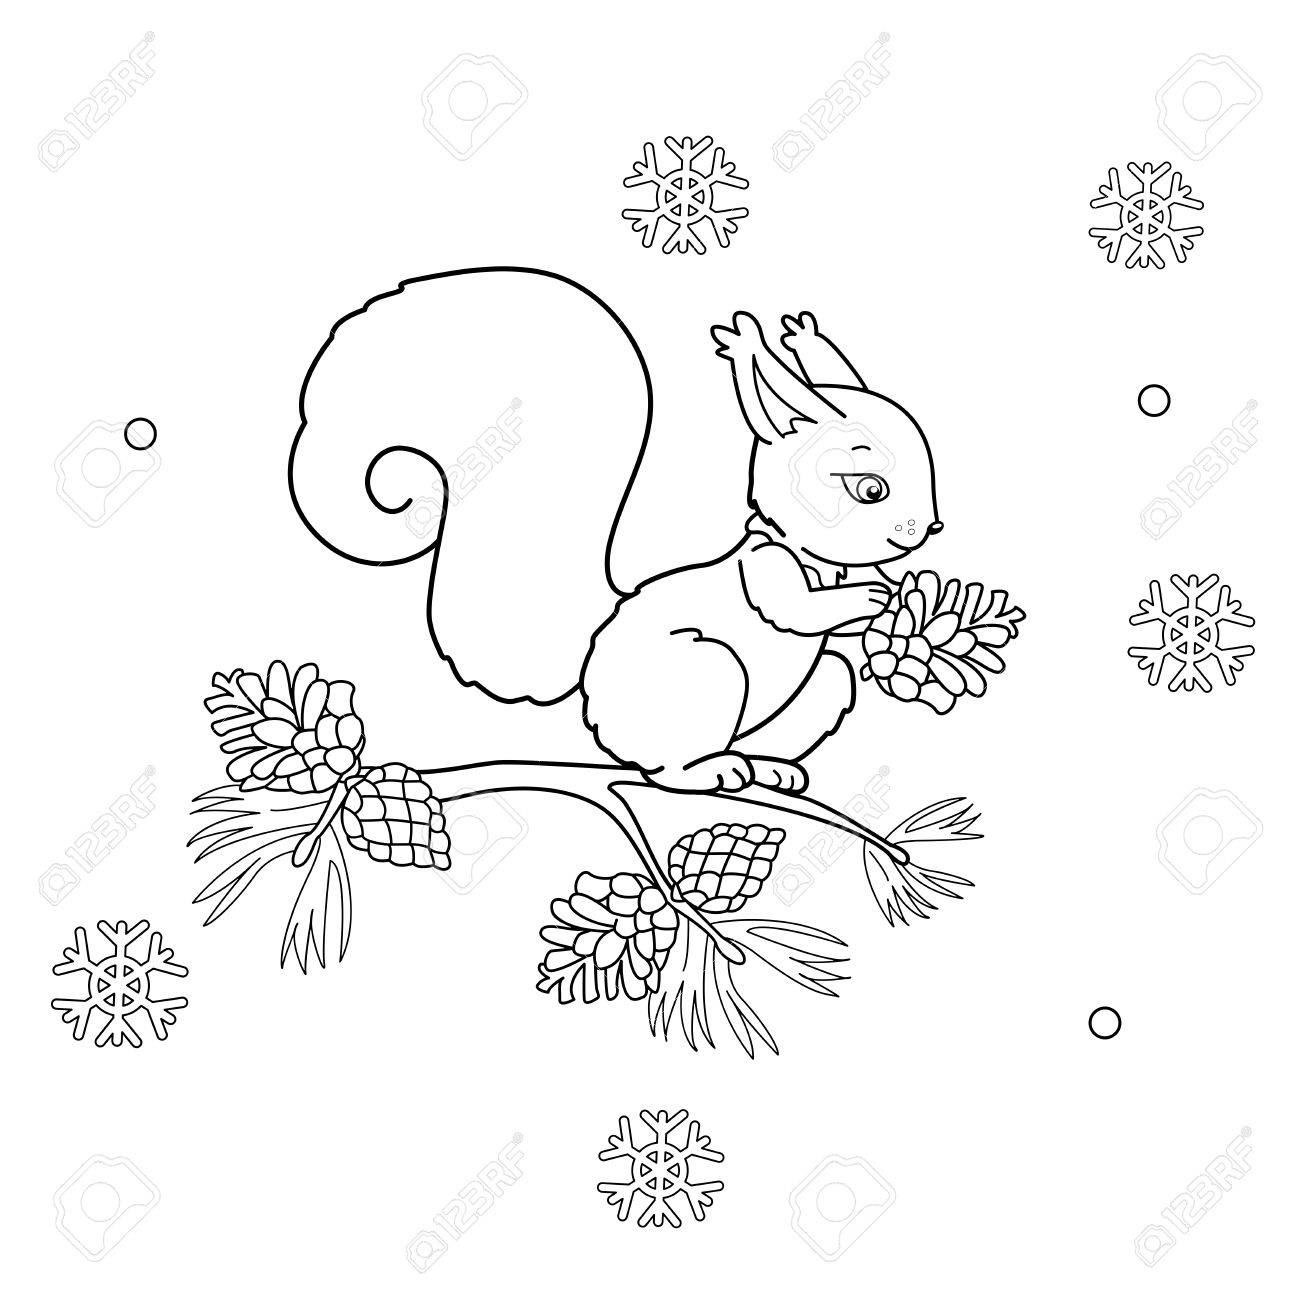 Coloring Page Outline Of Cartoon Squirrel With Cone. Winter ...